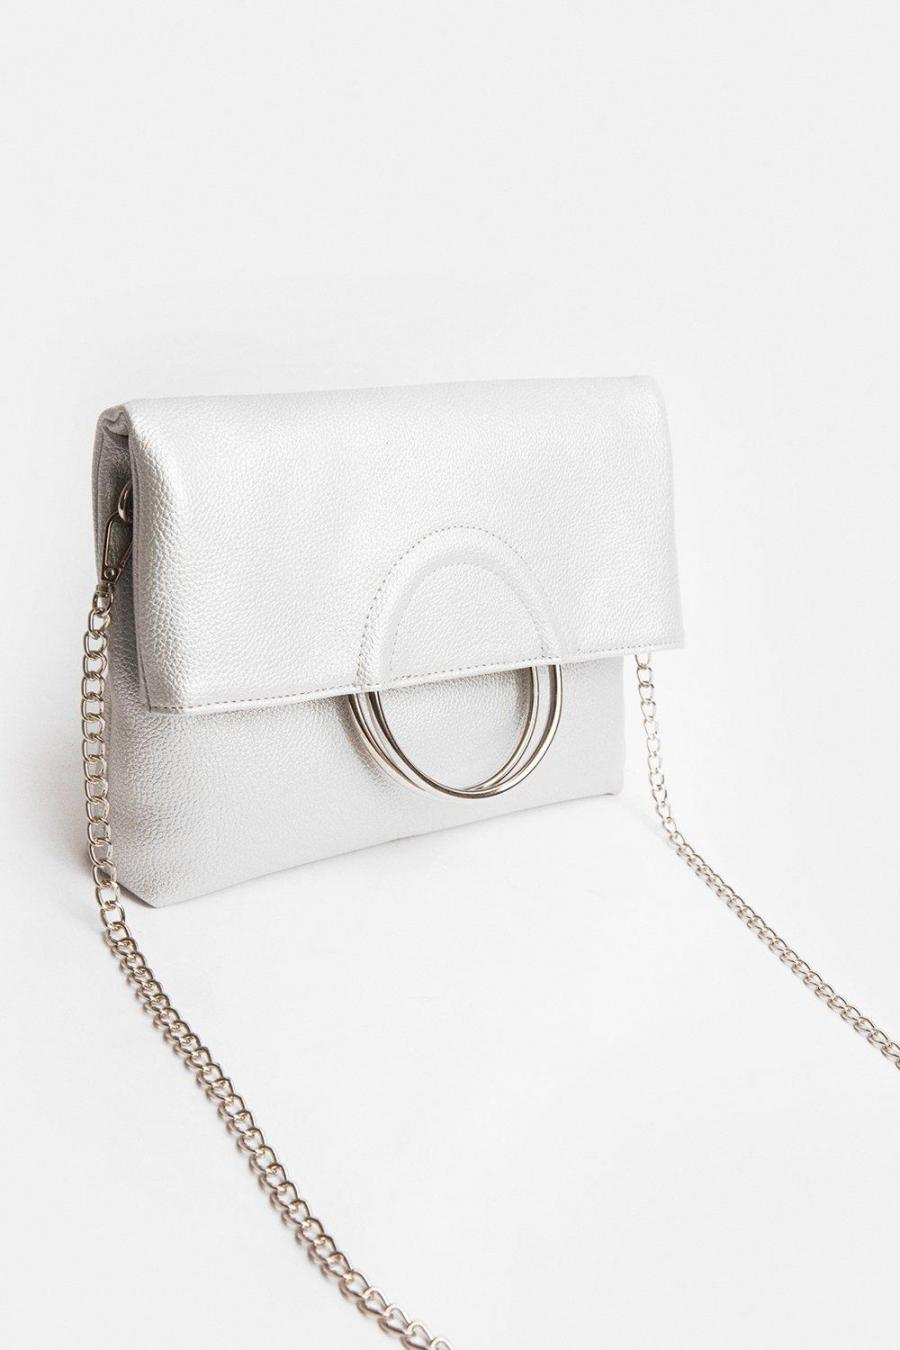 Coast Clutch Bag | Womens Ring Detail Clutch Bag Silver